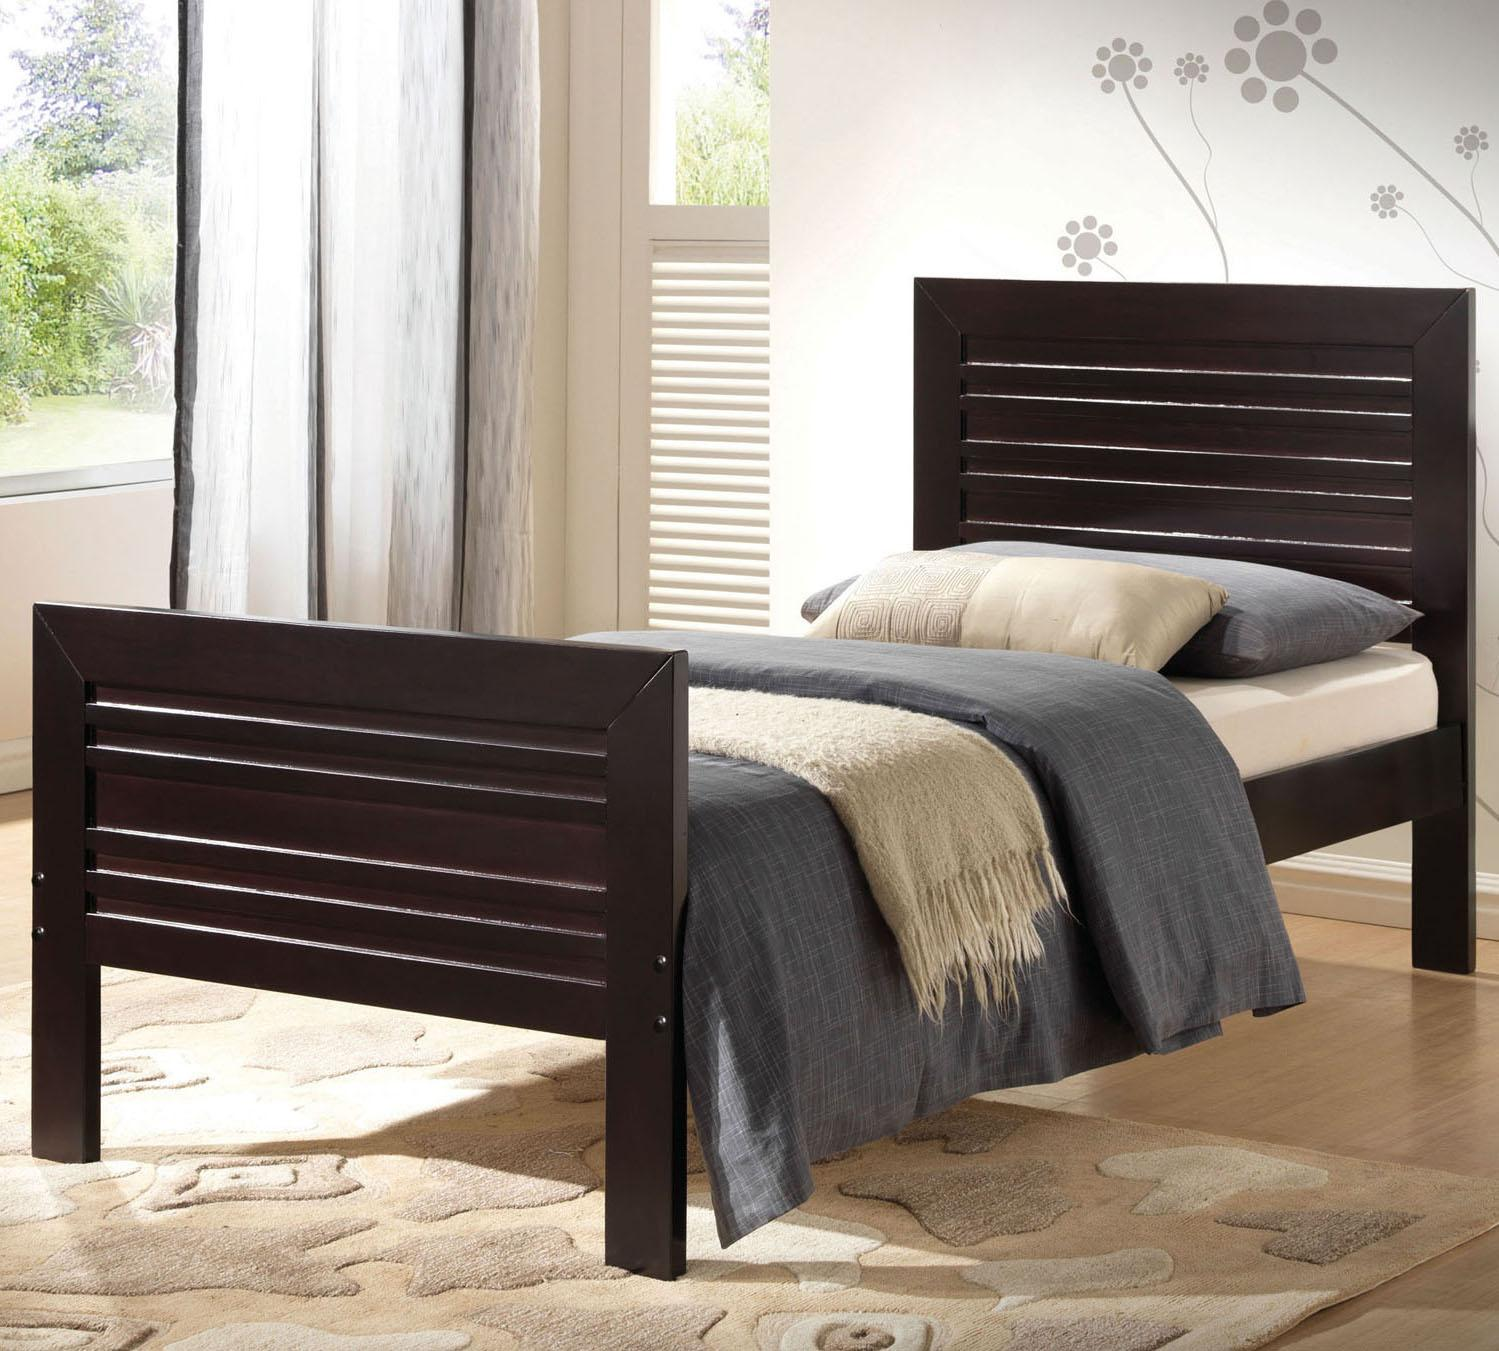 Acme Furniture Donato Twin Bed - Item Number: 21524T